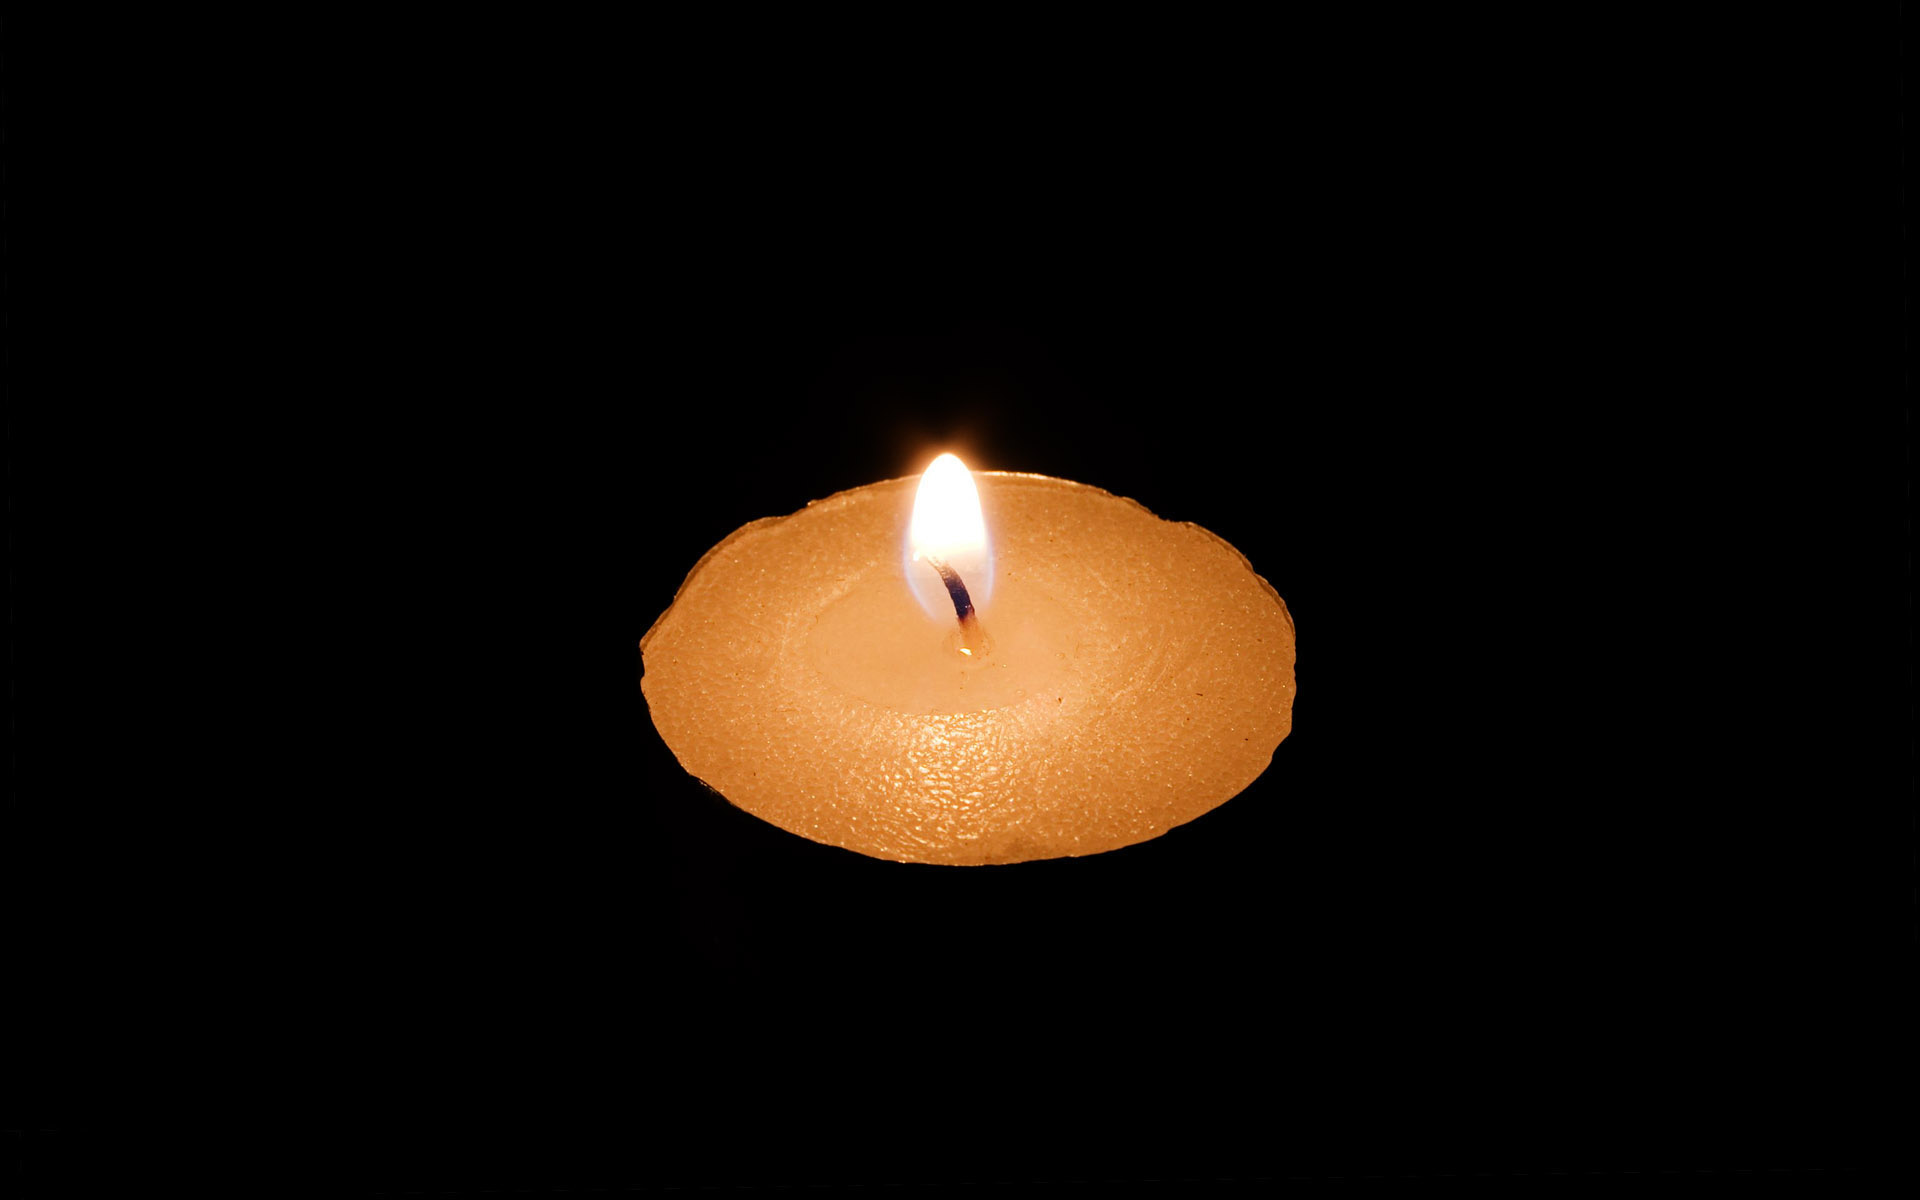 Candle wallpaper 7874